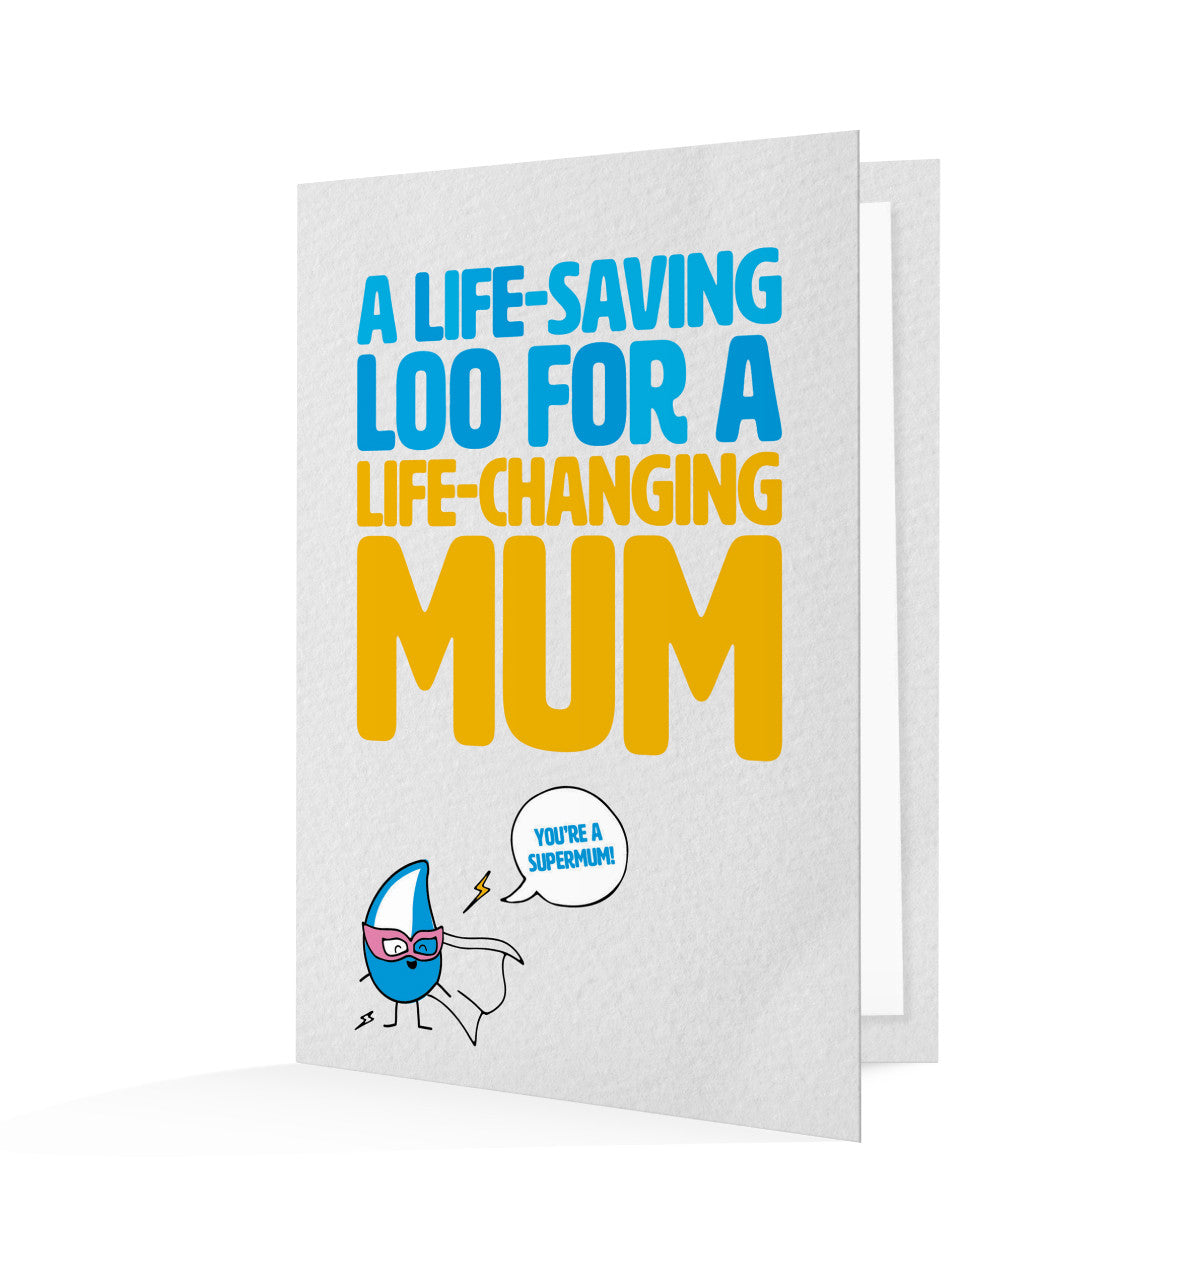 By gifting this Mothers' Day card, you'll be providing a life-saving loo that will help change lives of other mum's too!